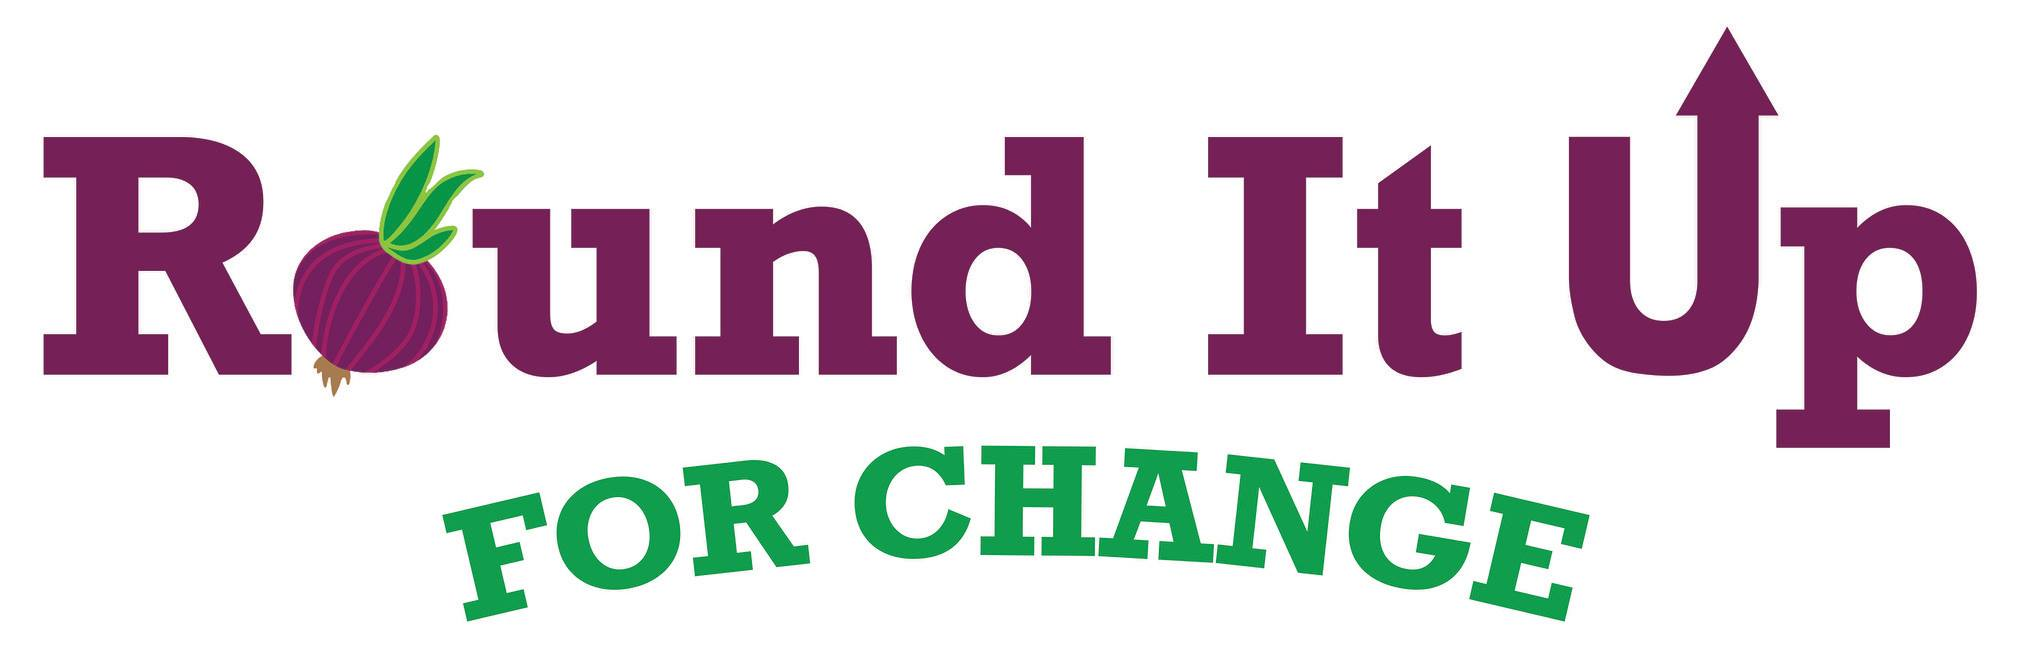 Round It Up For Change supports affordable housing in Lamoille County